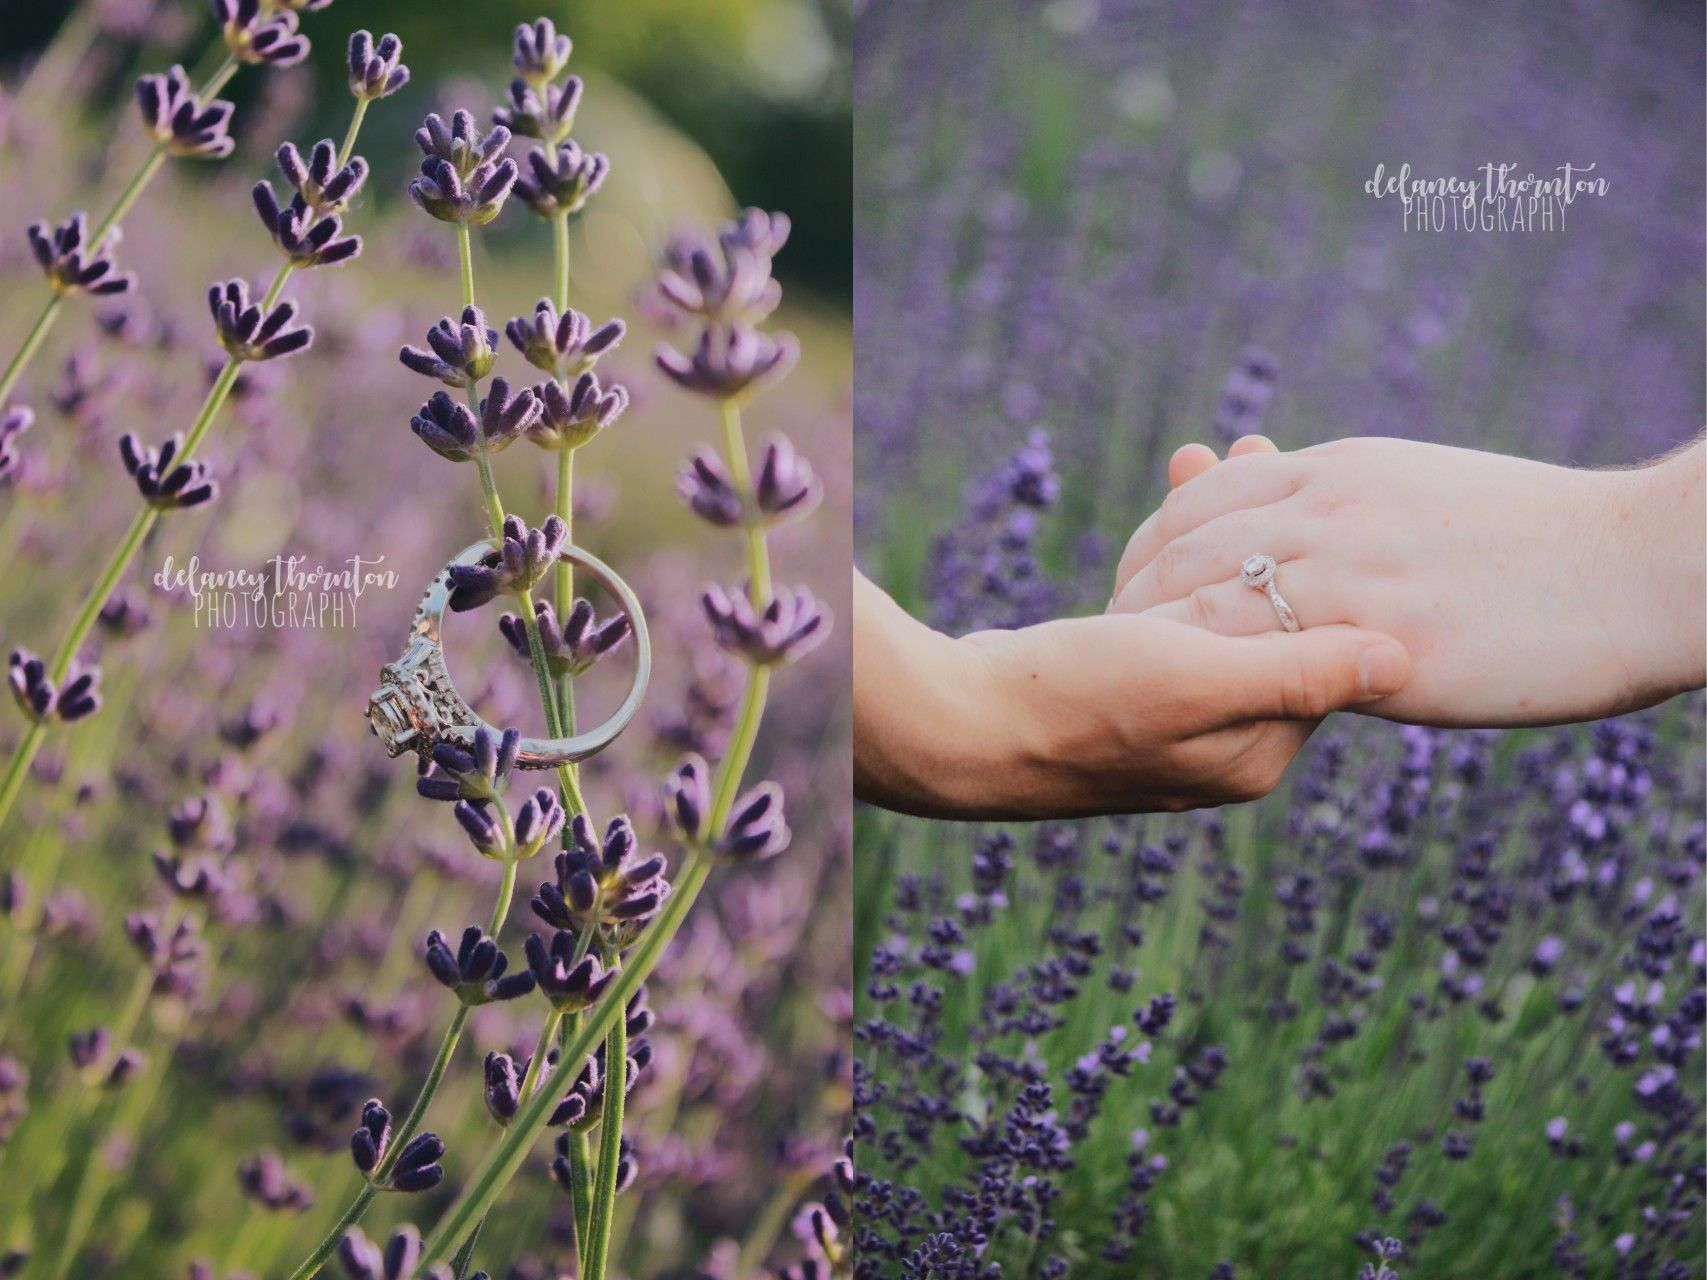 www.throughdelaneyslens.com Beautiful summer engagement photo session in a lavender field - they're full bloom in June! By Delaney Thornton Photography